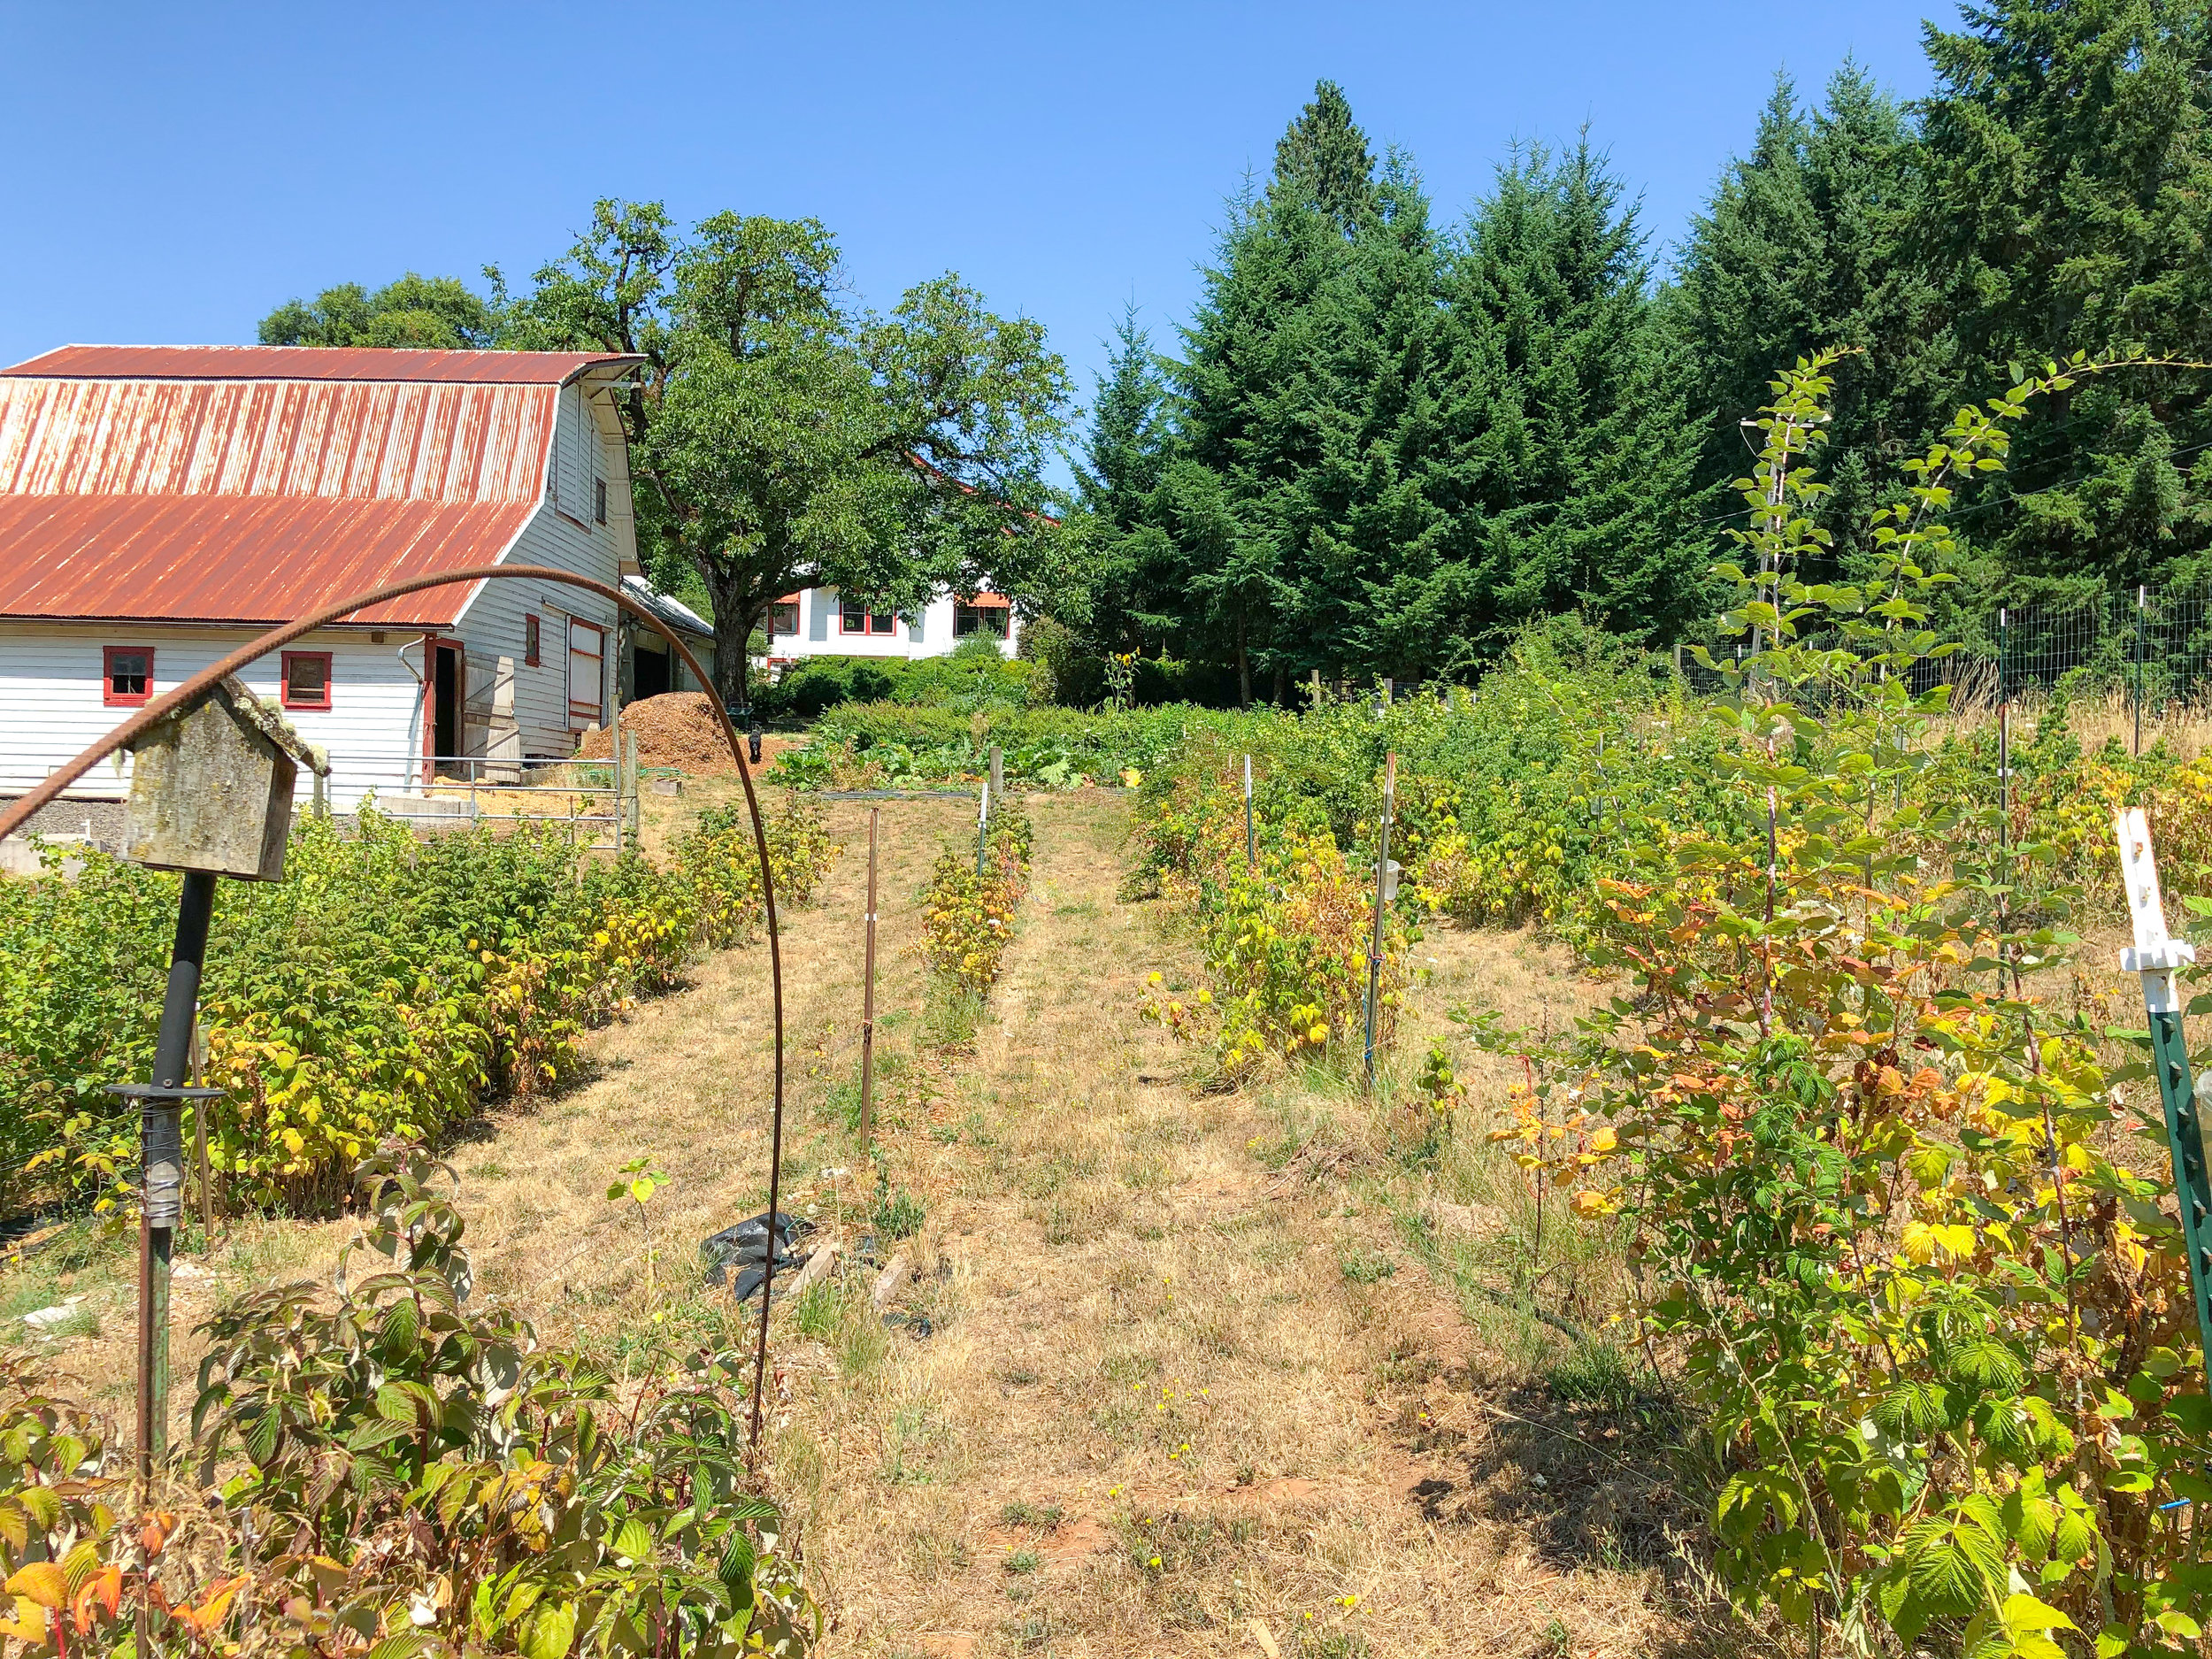 Rows of raspberries backing up to the family's horse barn.